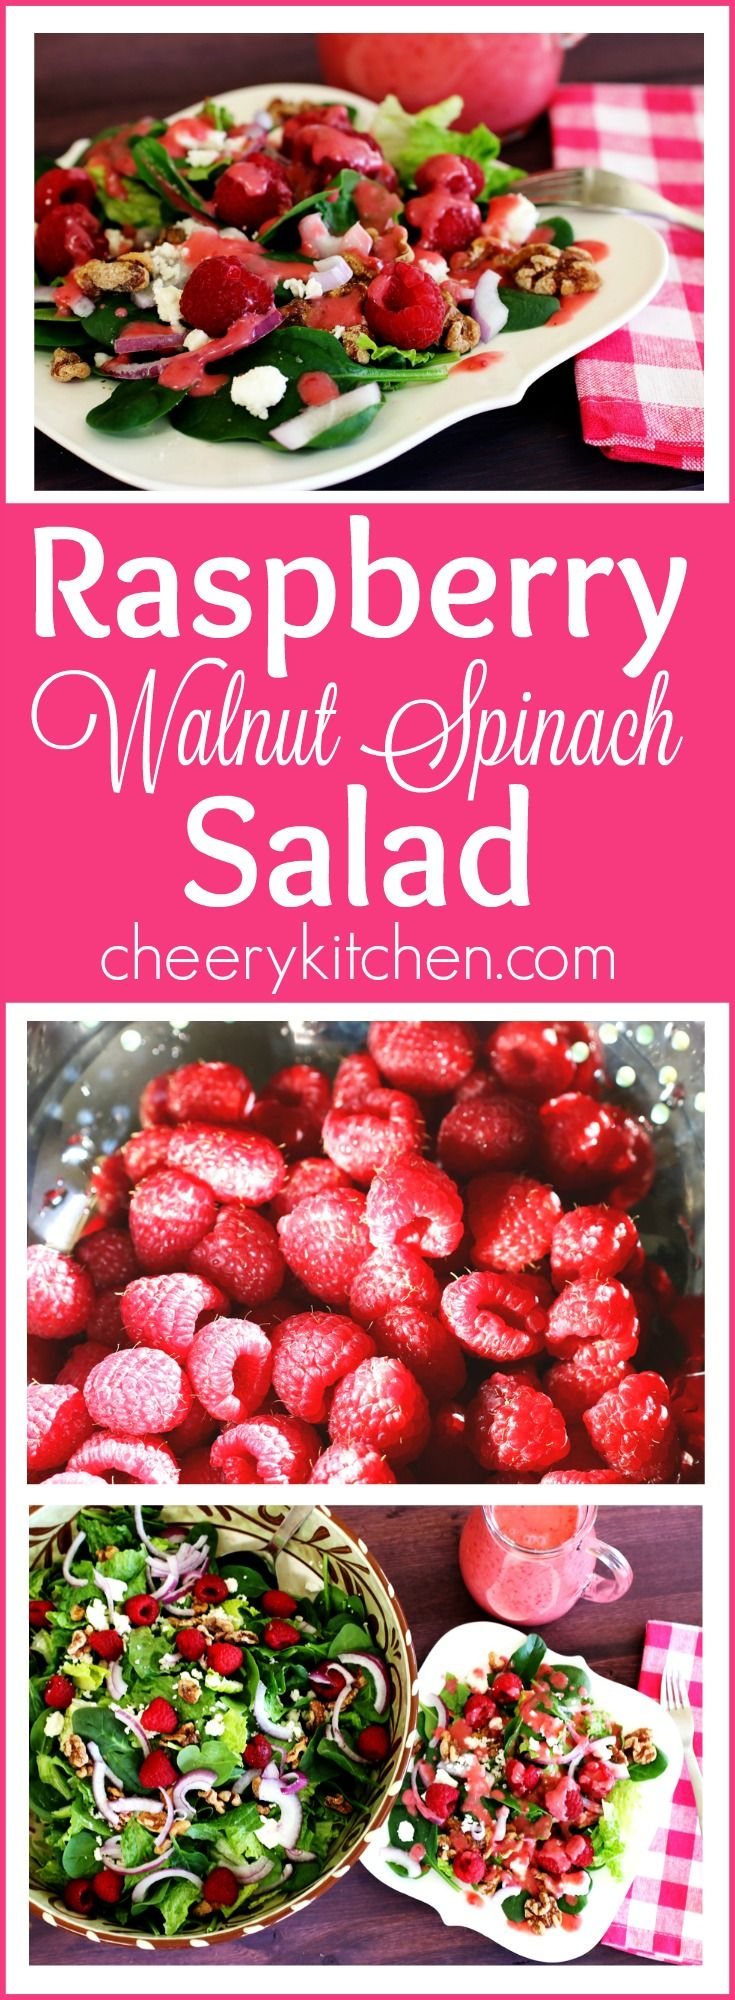 You'll smile over a delicious Raspberry Walnut Spinach Salad with a divine Creamy Raspberry Dressing!